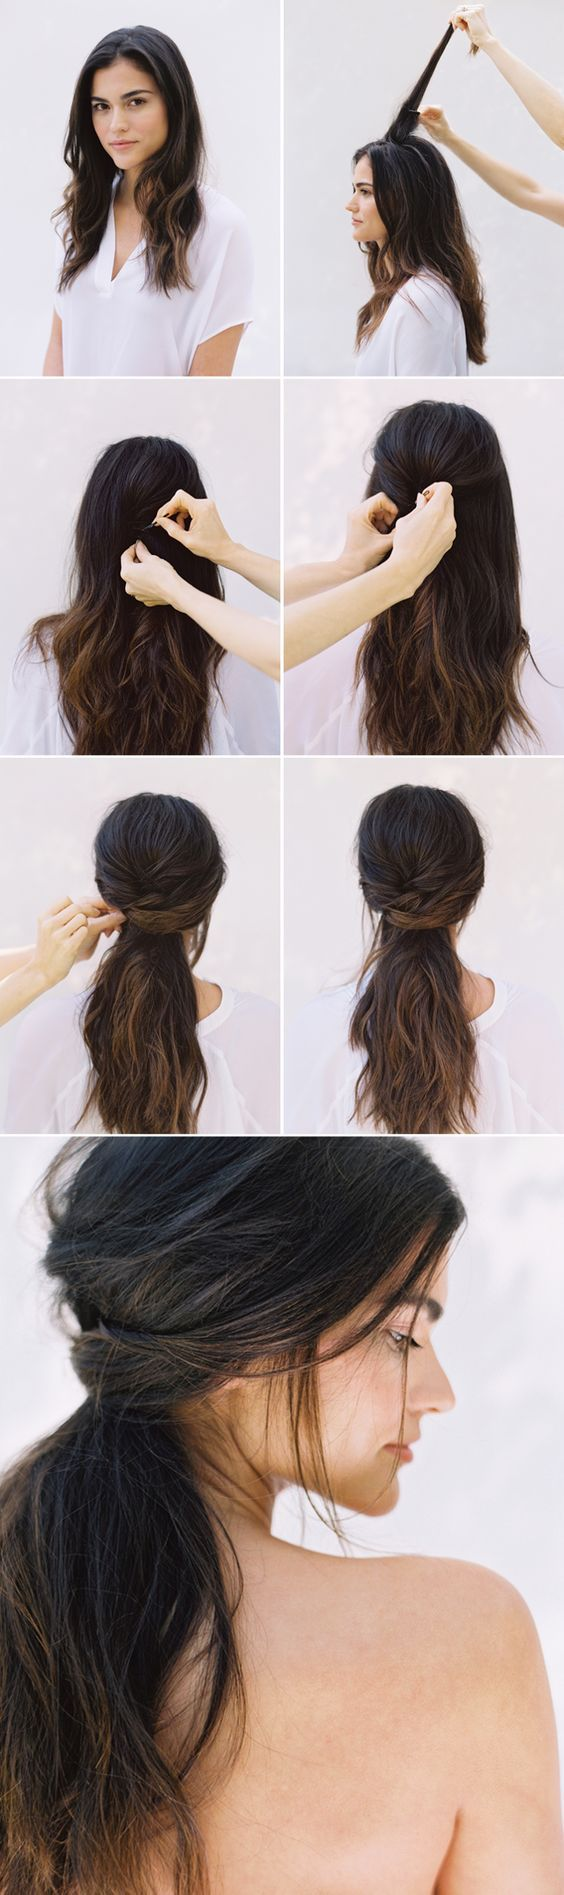 #DIY Half Up Half Down #Wedding #Hair - this with some boho braids tucked in the...